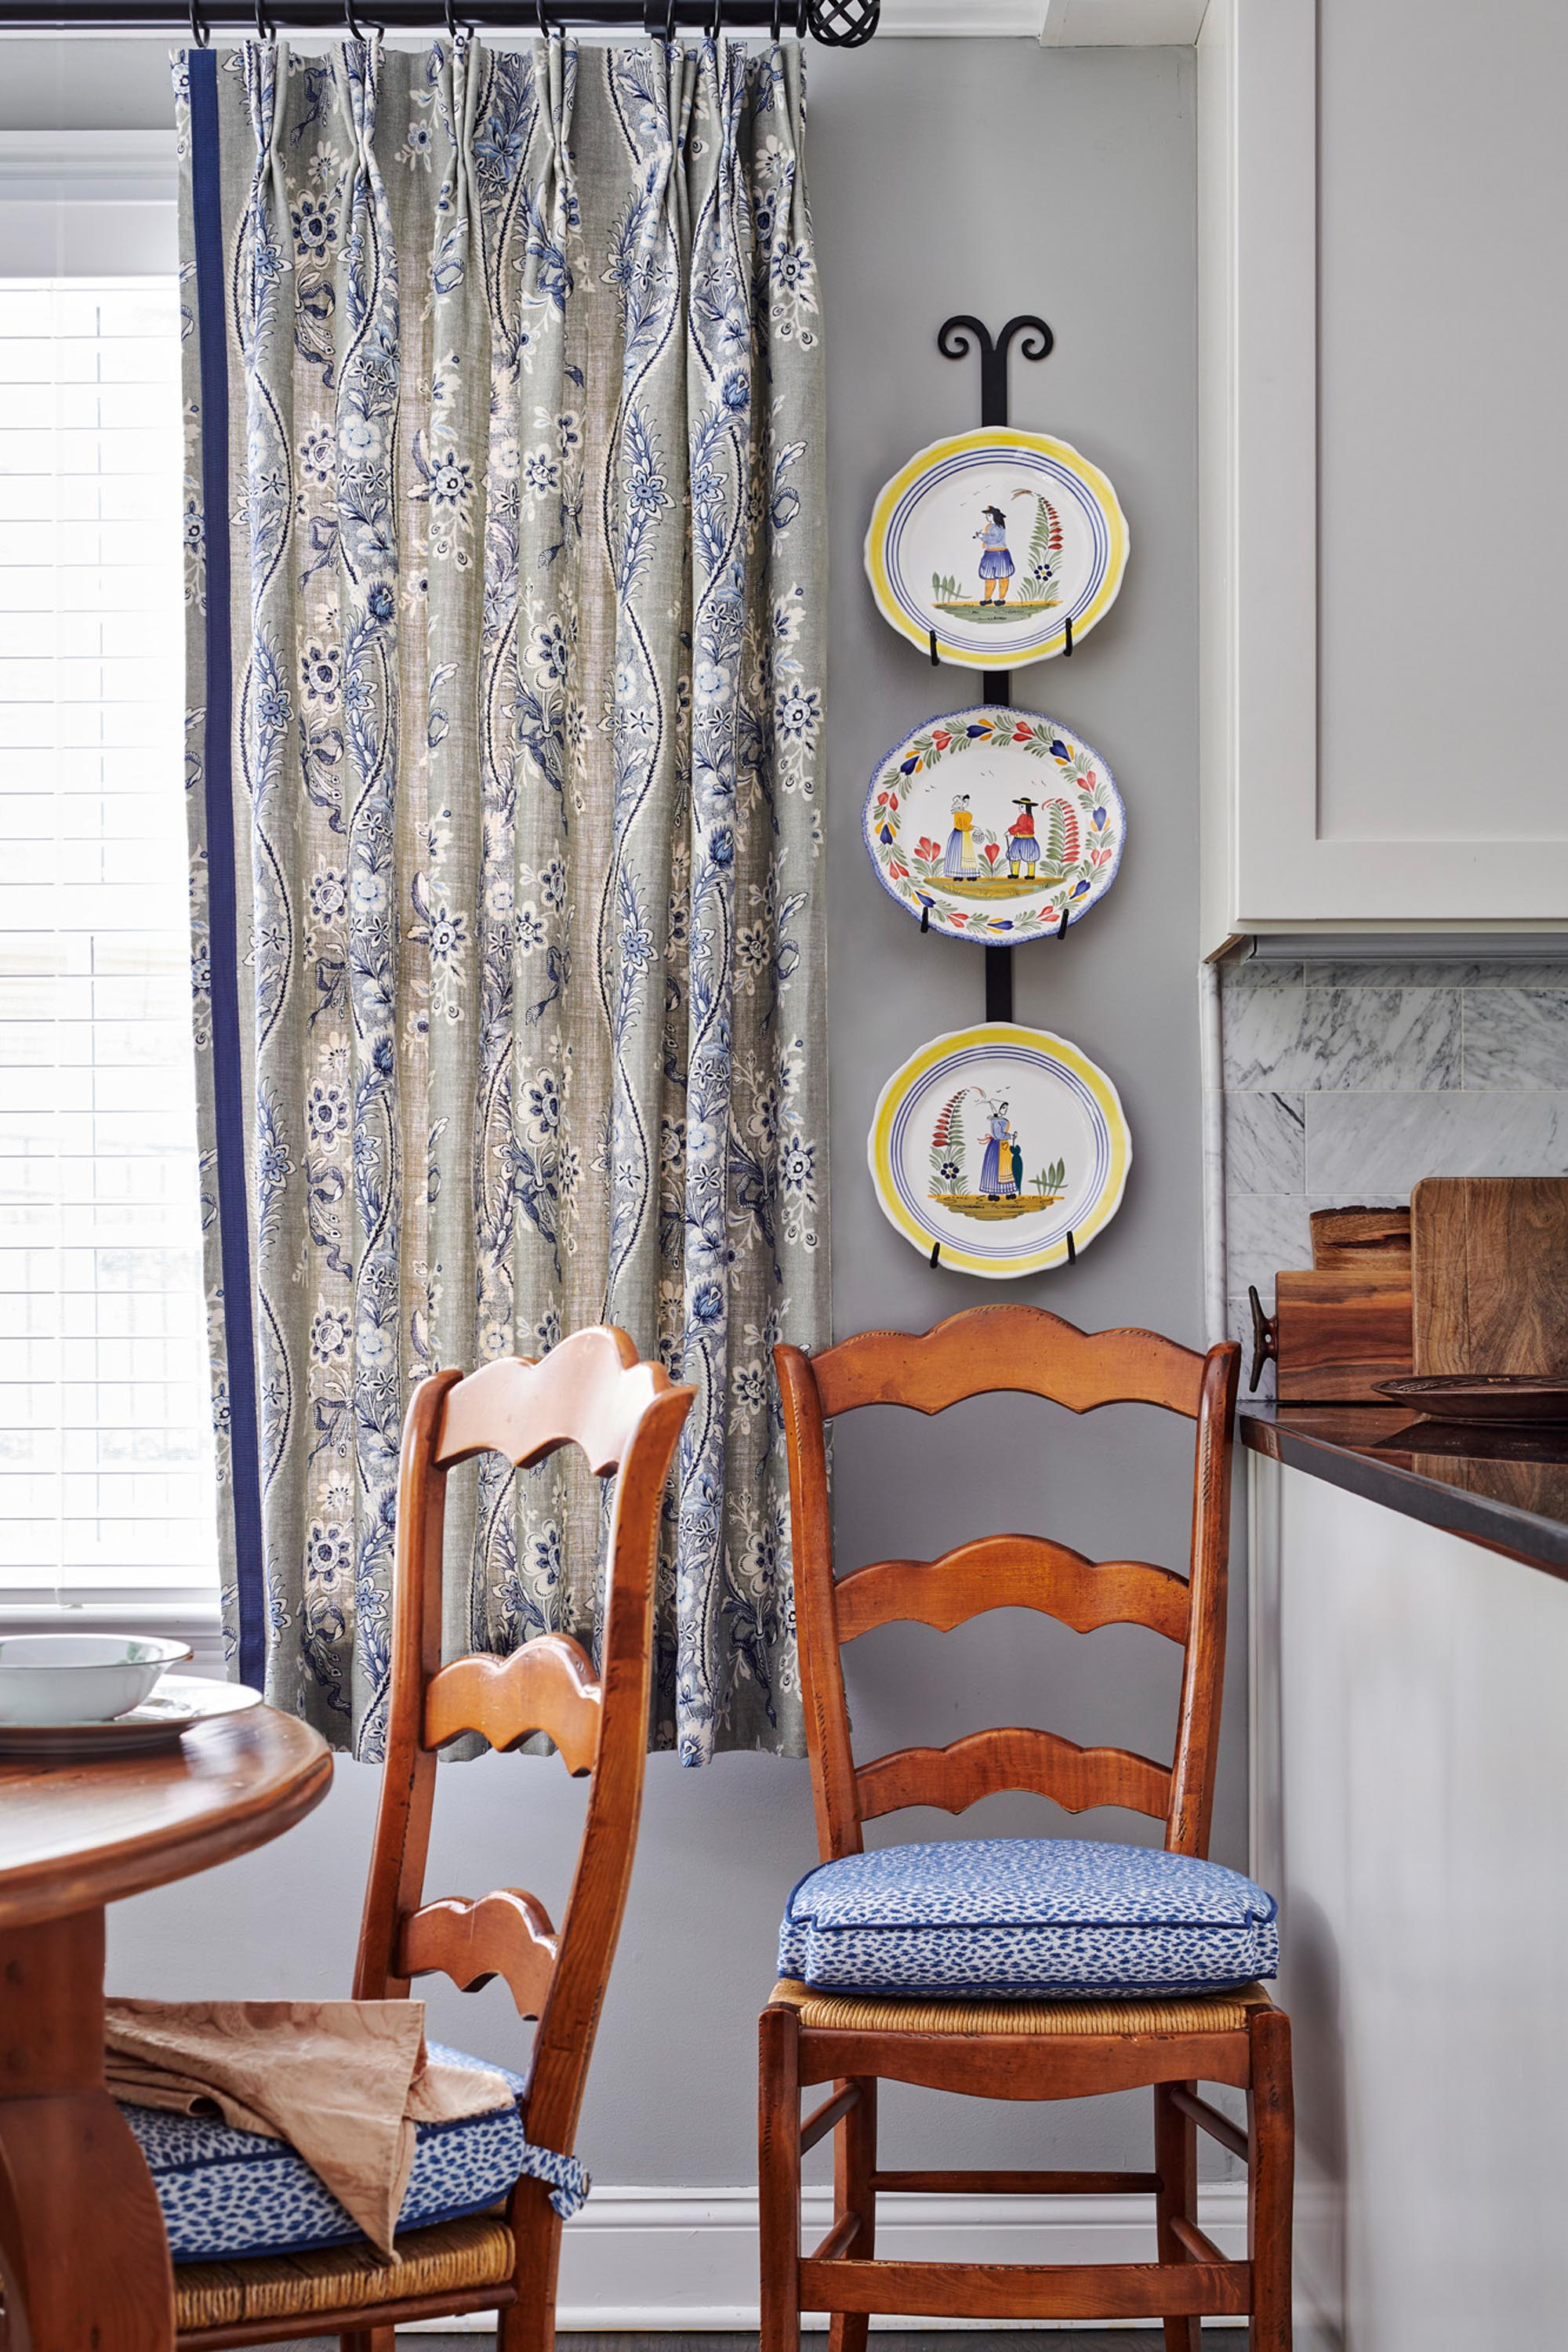 Decorative plates hanging on wall